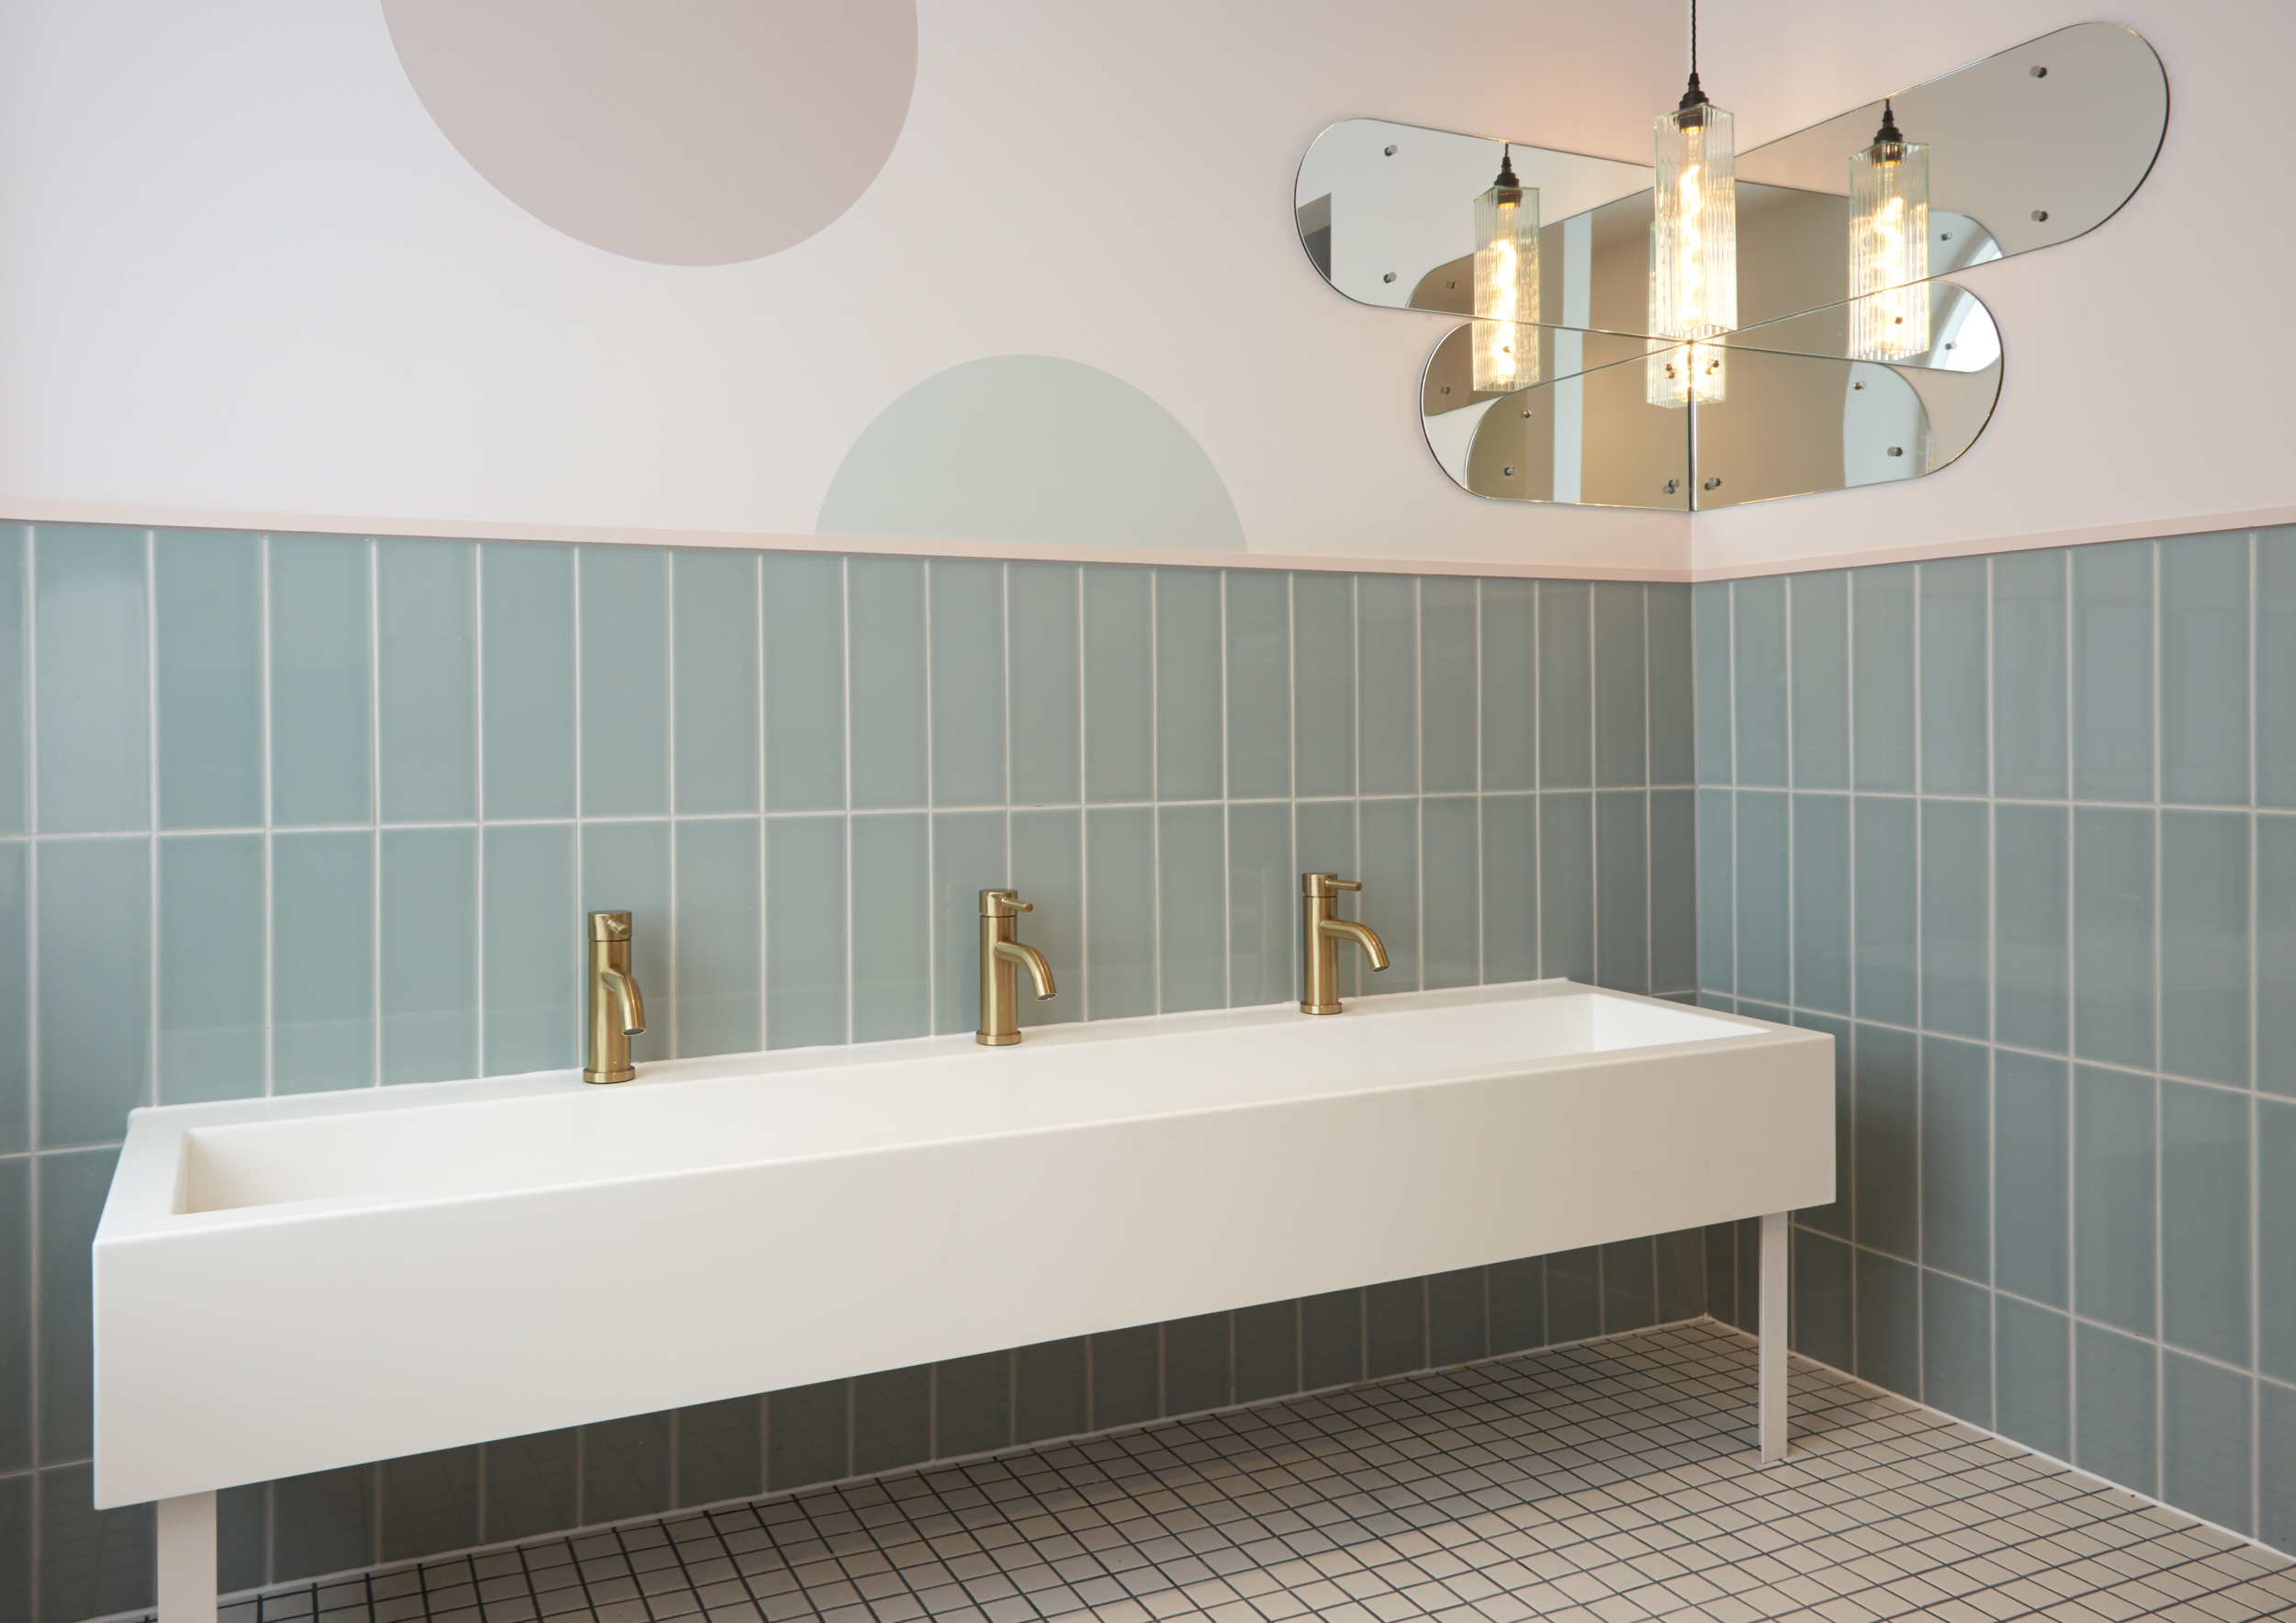 A bathroom with light blue tiles on the walls, white tiles on the floor and a long horizontal sink with 3 gold taps